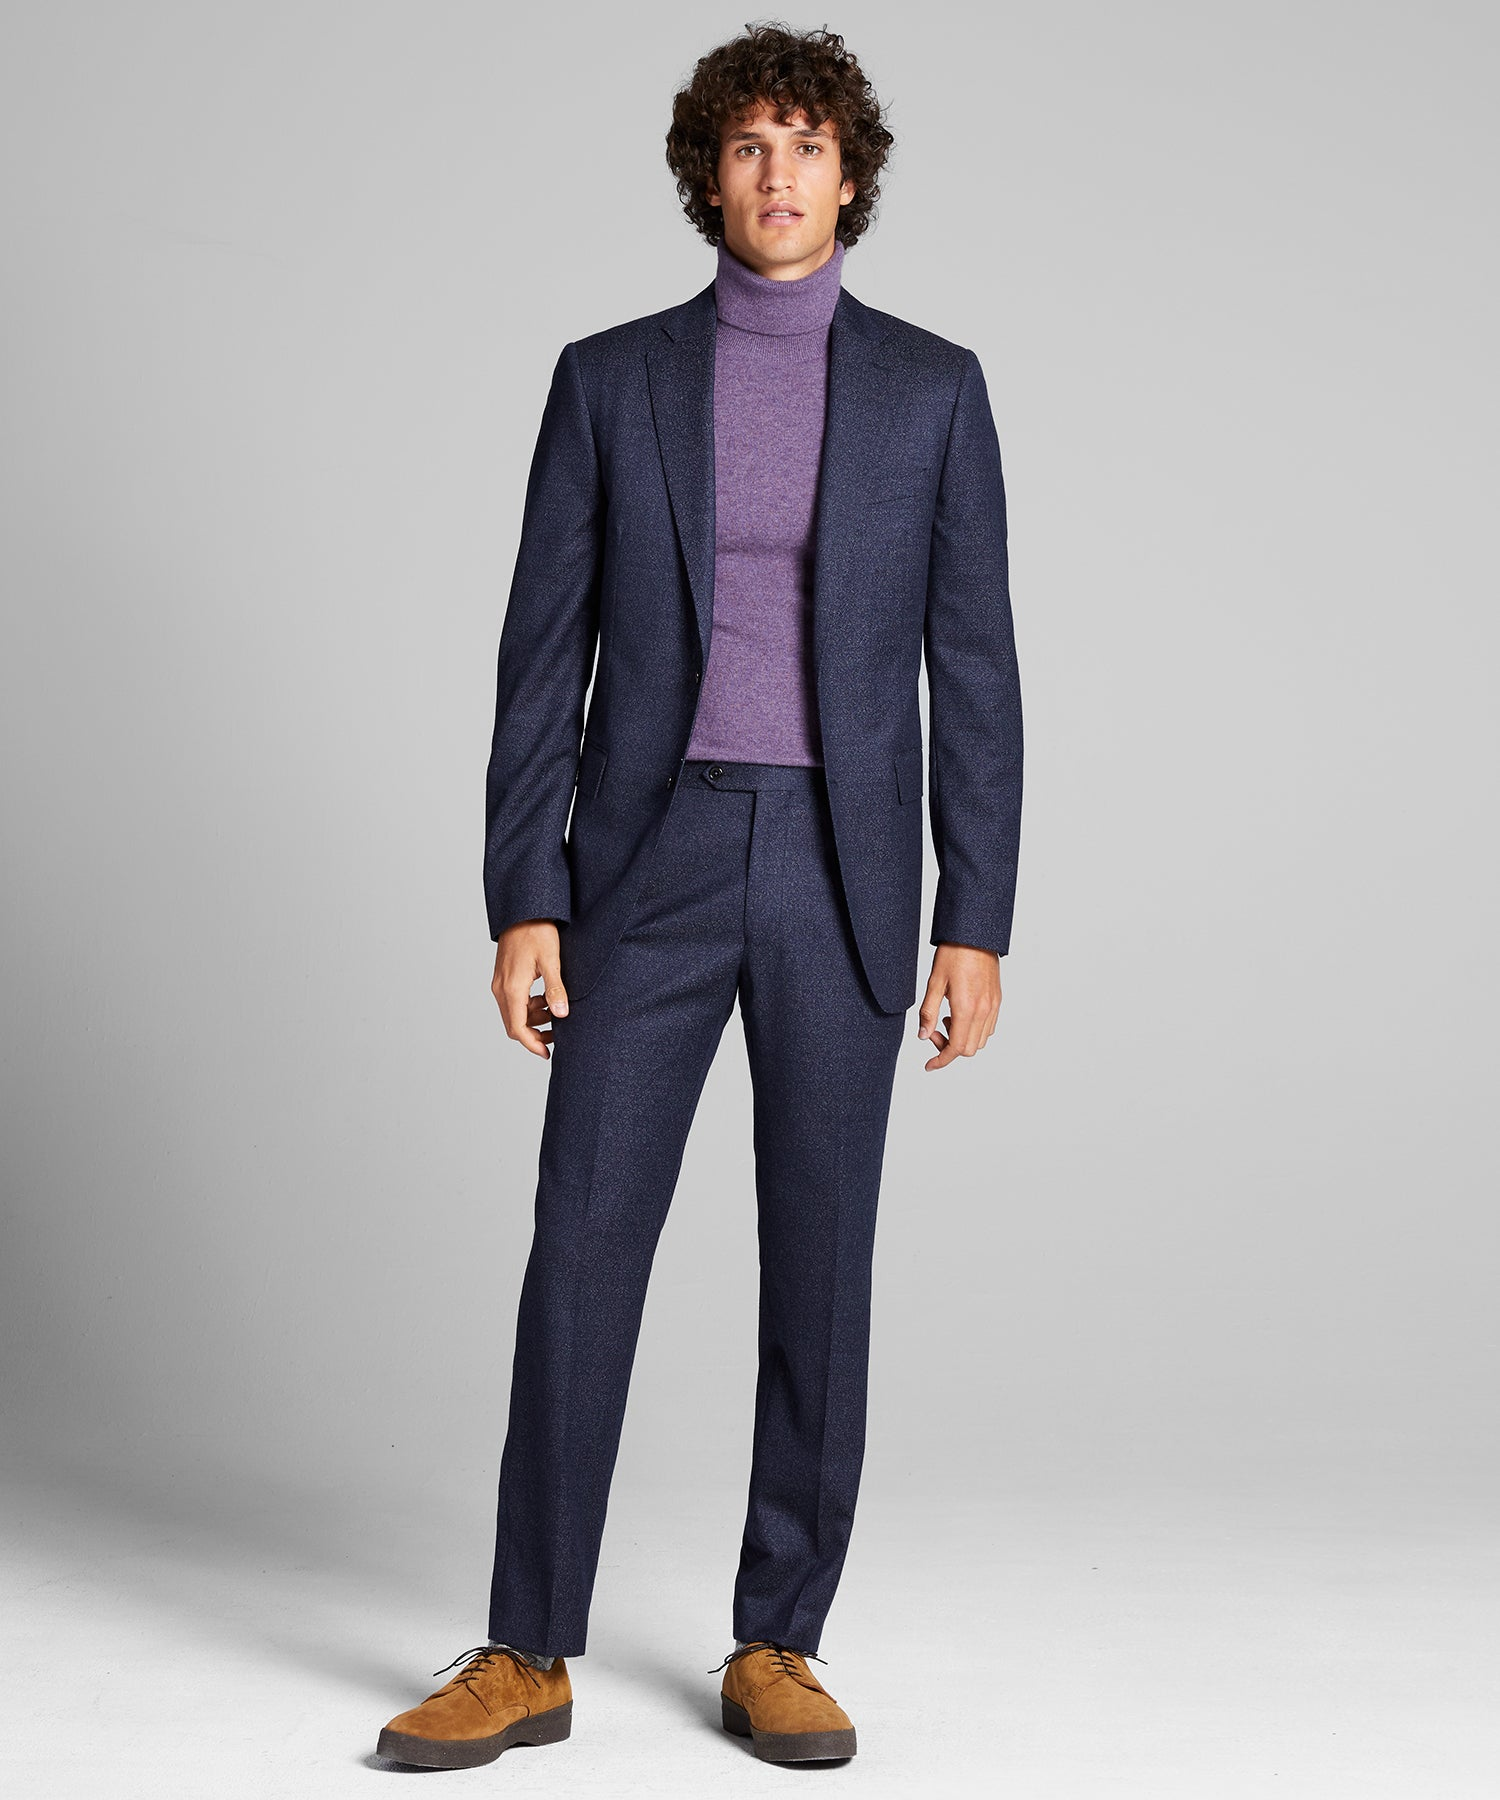 Sutton Speckled Wool Suit in Navy